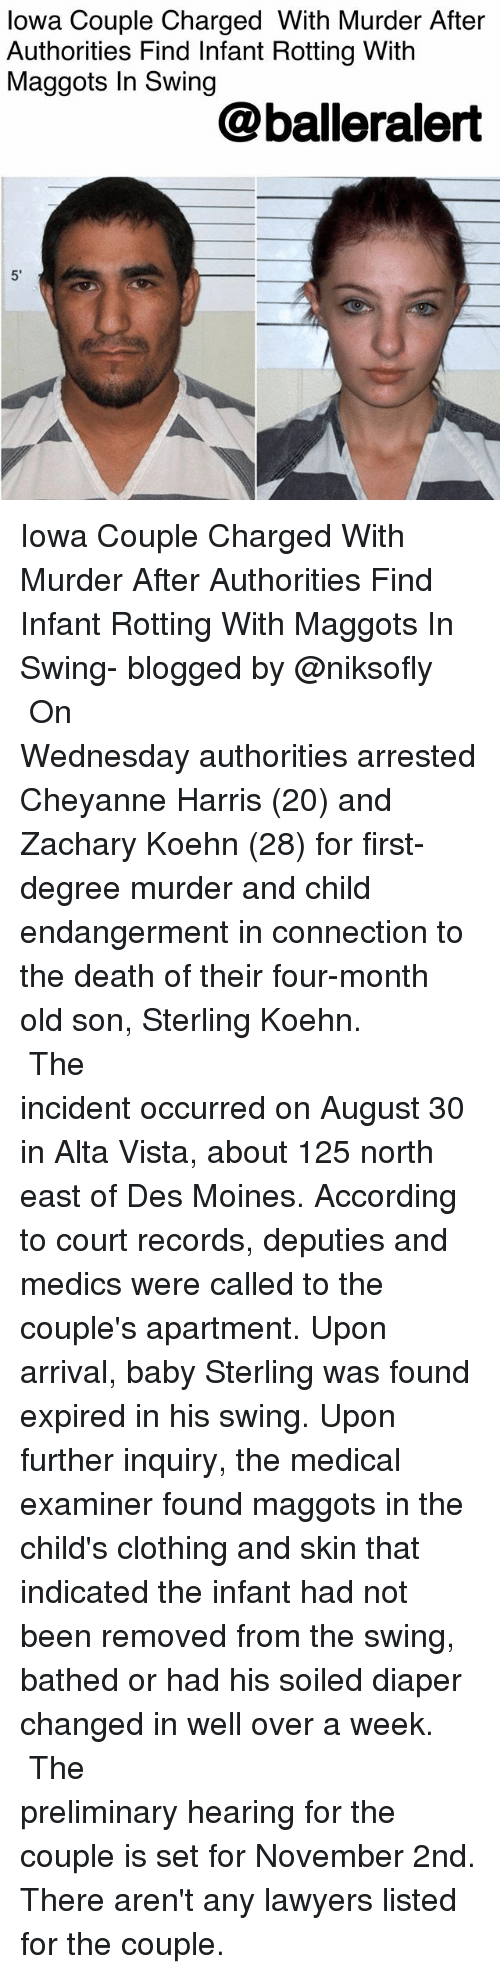 preliminary: lowa Couple Charged With Murder After  Authorities Find Infant Rotting With  Maggots In Swing  @balleralert  5' Iowa Couple Charged With Murder After Authorities Find Infant Rotting With Maggots In Swing- blogged by @niksofly ⠀⠀⠀⠀⠀⠀⠀⠀⠀⠀⠀⠀⠀⠀⠀⠀⠀⠀⠀⠀⠀⠀⠀⠀⠀⠀⠀⠀⠀⠀⠀⠀⠀ On Wednesday authorities arrested Cheyanne Harris (20) and Zachary Koehn (28) for first-degree murder and child endangerment in connection to the death of their four-month old son, Sterling Koehn. ⠀⠀⠀⠀⠀⠀⠀⠀⠀⠀⠀⠀⠀⠀⠀⠀⠀⠀⠀⠀⠀⠀⠀⠀⠀⠀⠀⠀⠀⠀⠀⠀⠀ The incident occurred on August 30 in Alta Vista, about 125 north east of Des Moines. According to court records, deputies and medics were called to the couple's apartment. Upon arrival, baby Sterling was found expired in his swing. Upon further inquiry, the medical examiner found maggots in the child's clothing and skin that indicated the infant had not been removed from the swing, bathed or had his soiled diaper changed in well over a week. ⠀⠀⠀⠀⠀⠀⠀⠀⠀⠀⠀⠀⠀⠀⠀⠀⠀⠀⠀⠀⠀⠀⠀⠀⠀⠀⠀⠀⠀⠀⠀⠀⠀ The preliminary hearing for the couple is set for November 2nd. There aren't any lawyers listed for the couple.